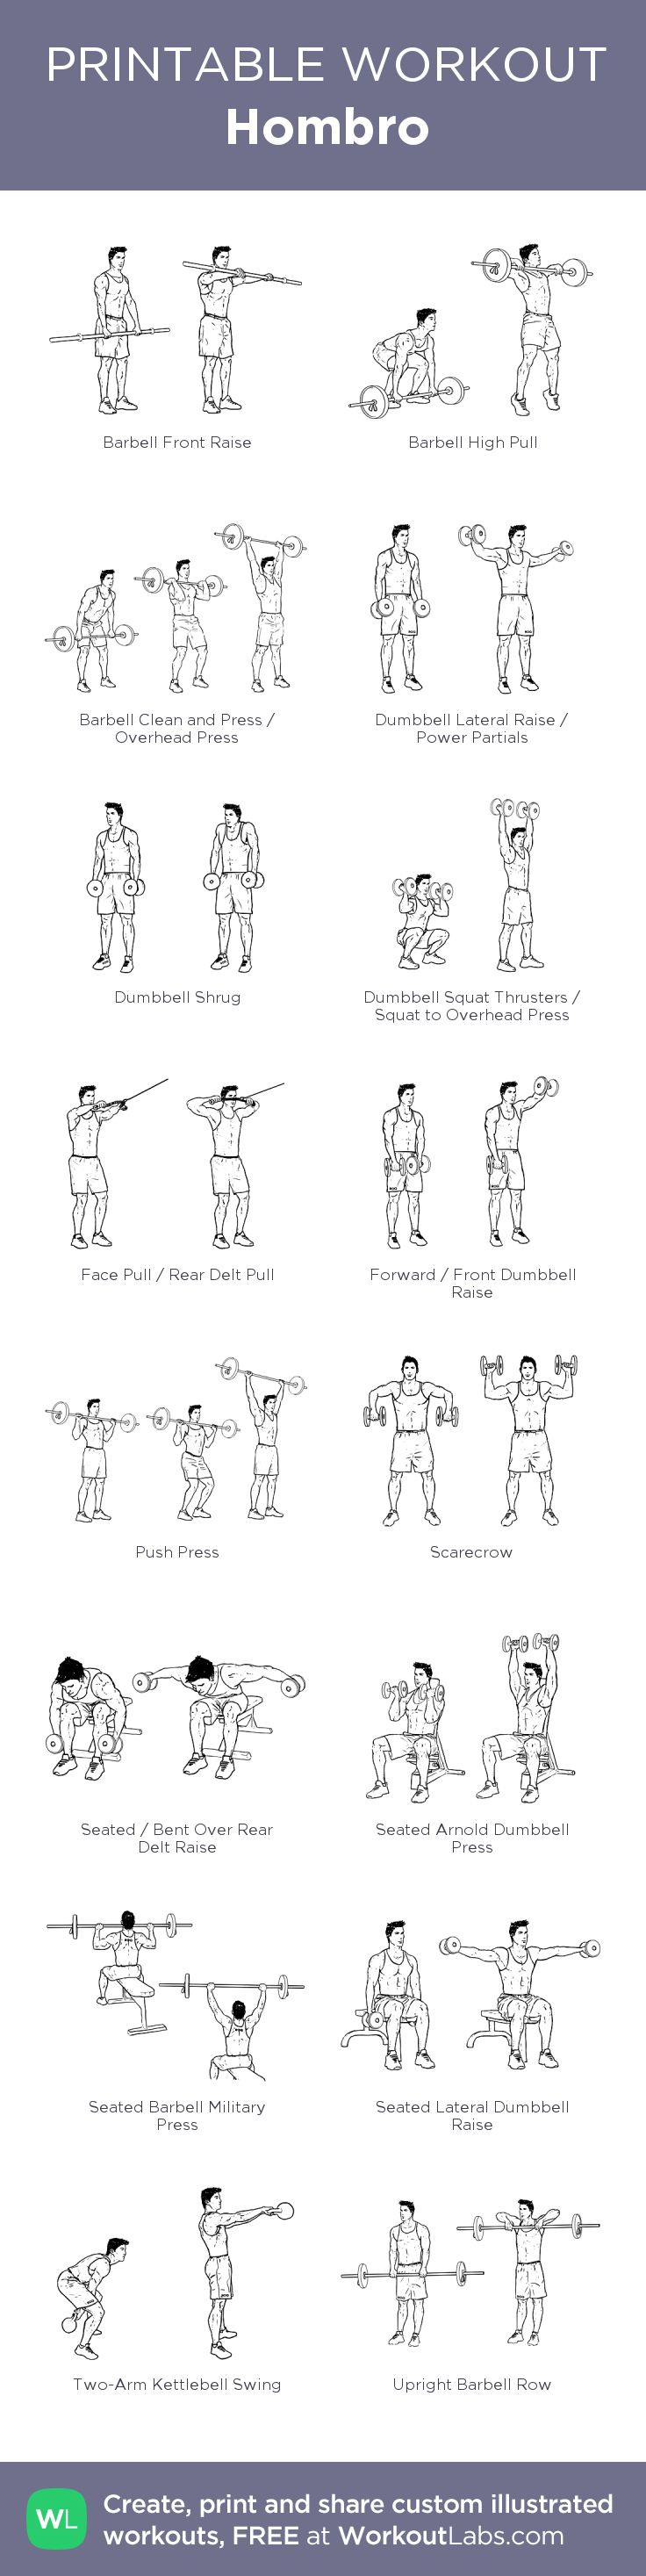 Hombro:my visual workout created at WorkoutLabs.com • Click through to customize and download as a FREE PDF! #customworkout